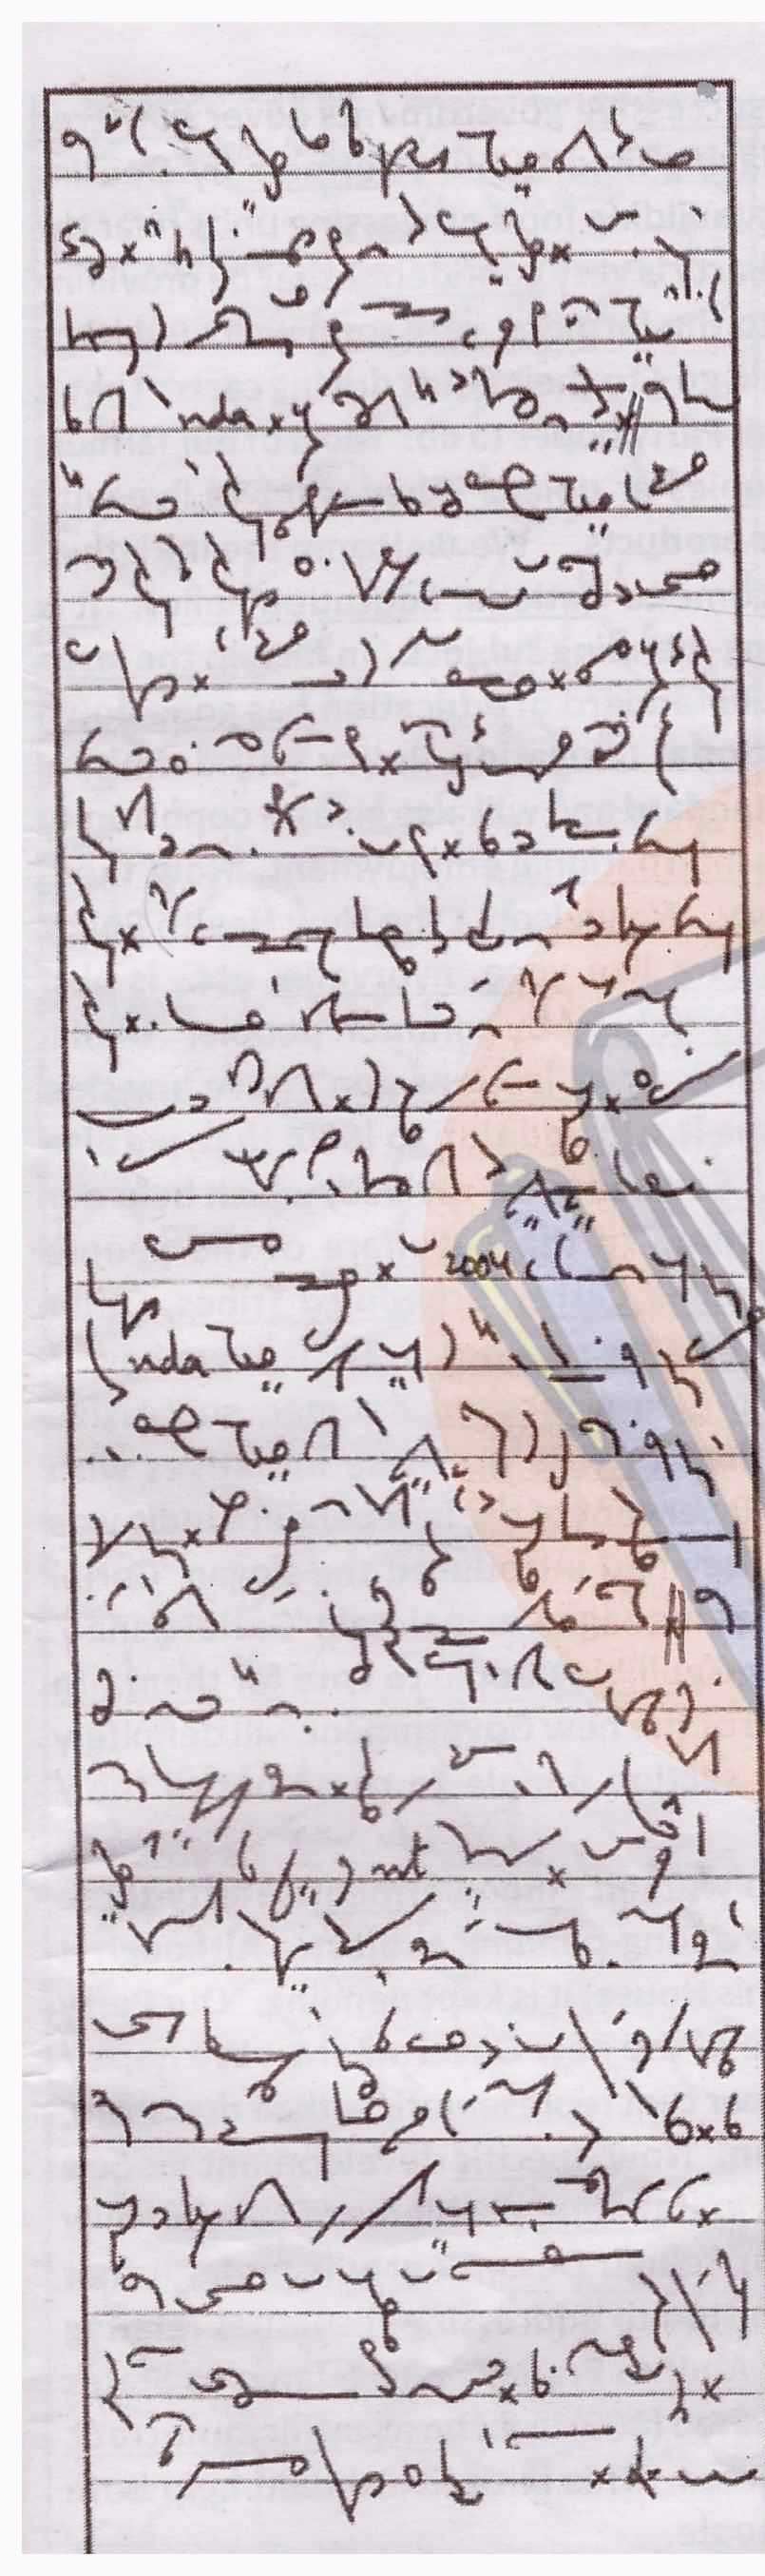 """Shorthand Dictation 80 Words per minute """" Problems in Economics"""